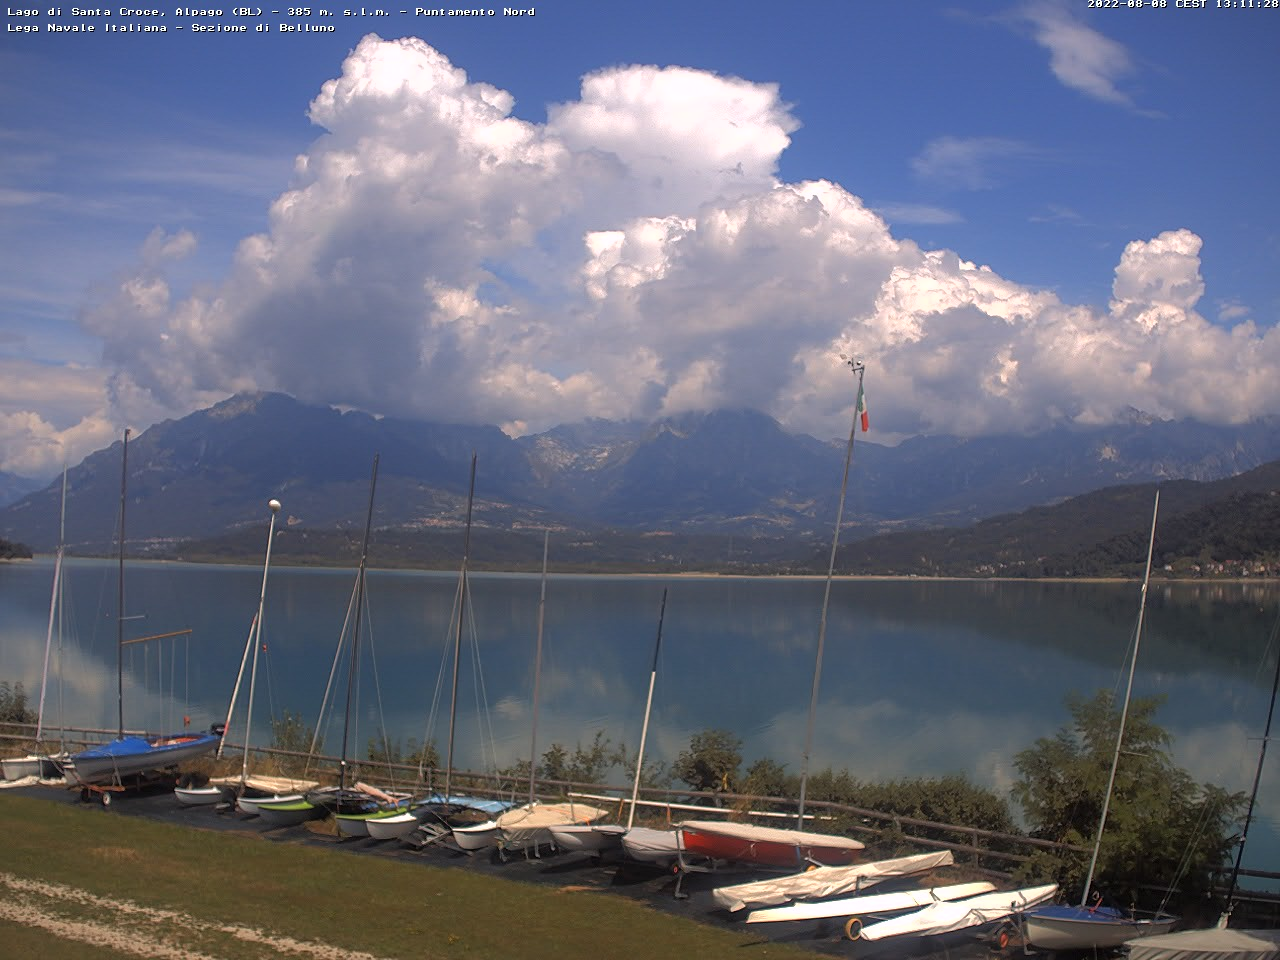 Webcam dalla base di S. Croce: